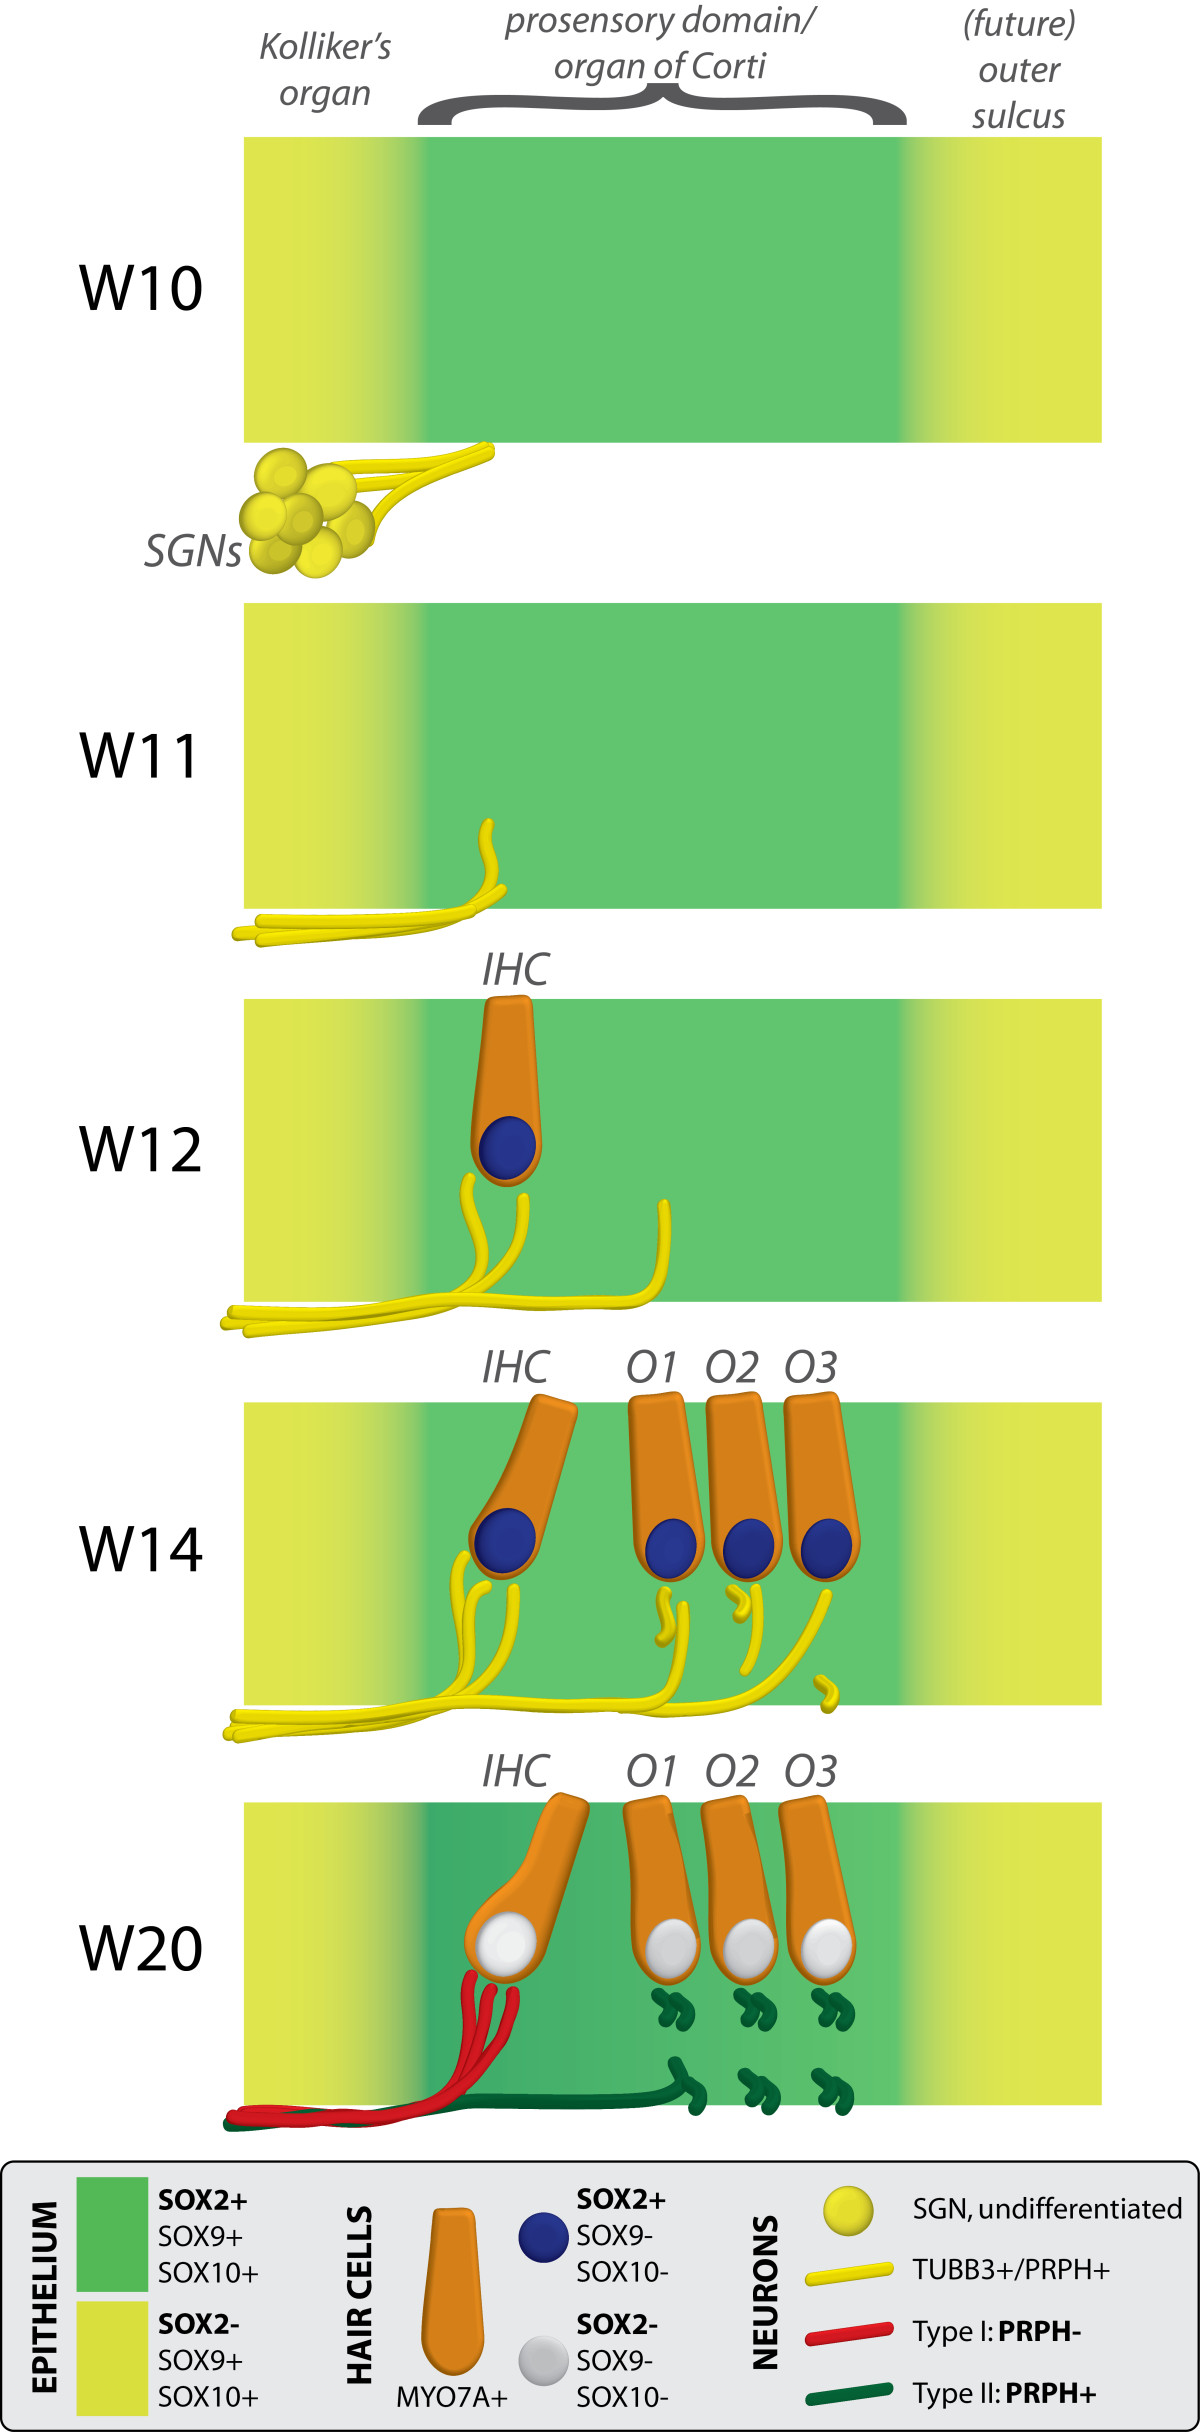 http://static-content.springer.com/image/art%3A10.1186%2F1749-8104-8-20/MediaObjects/13064_2013_Article_241_Fig9_HTML.jpg